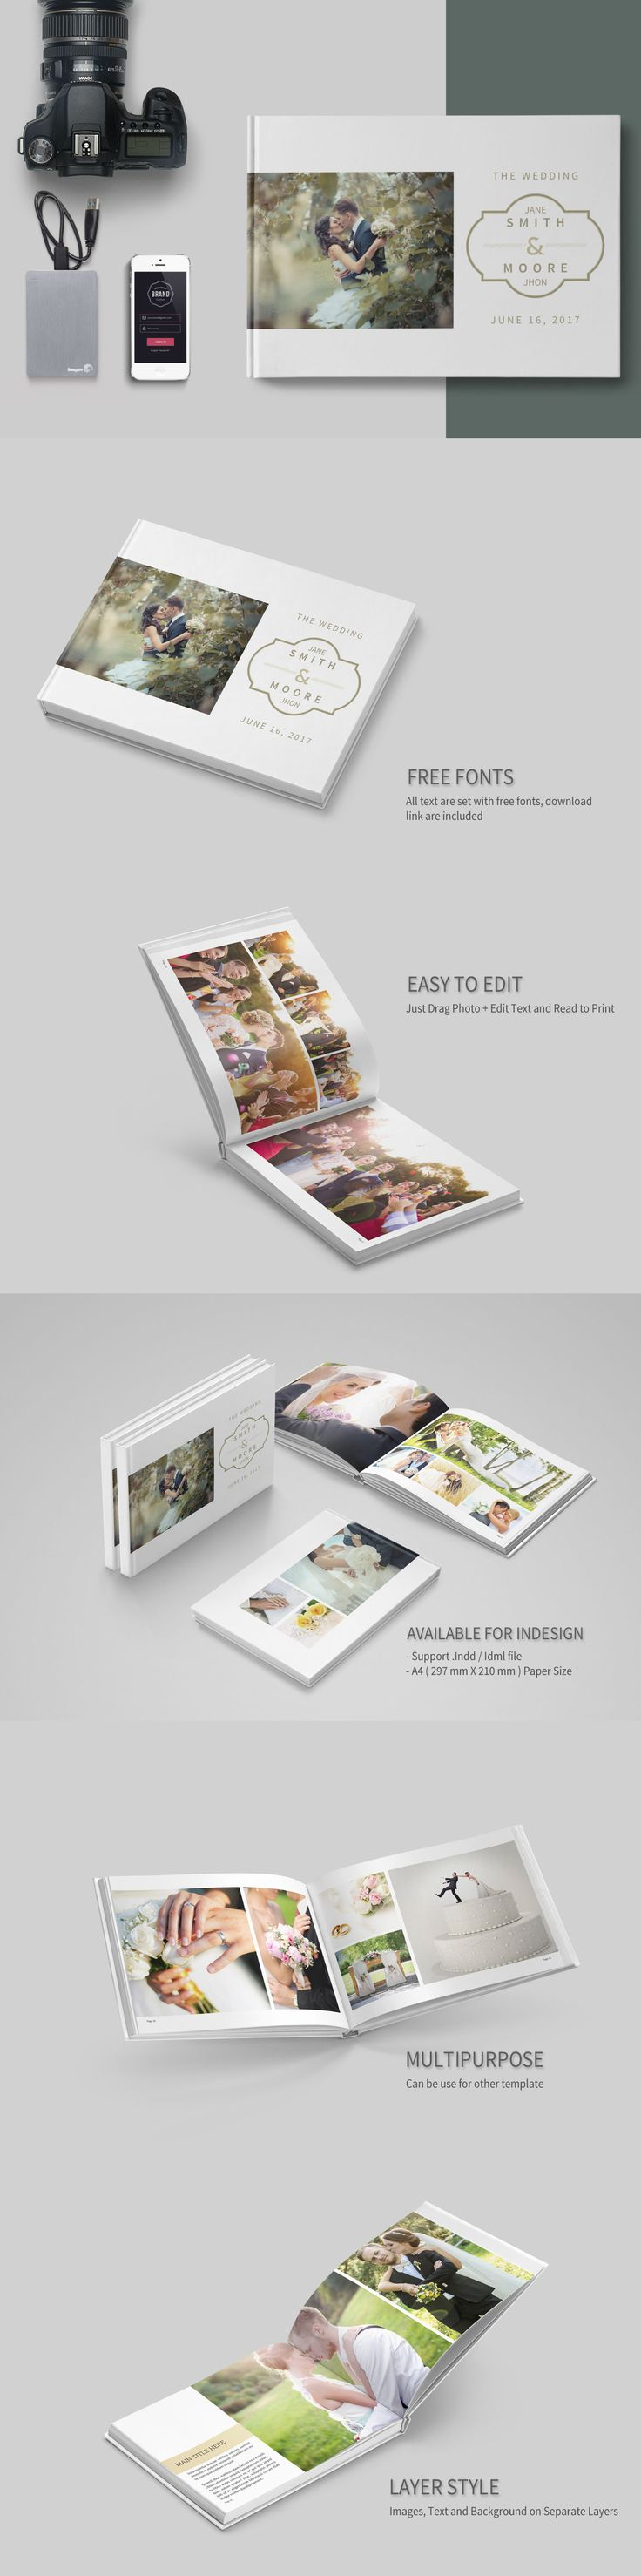 292 best photo album templates images on pinterest | fonts, Powerpoint templates